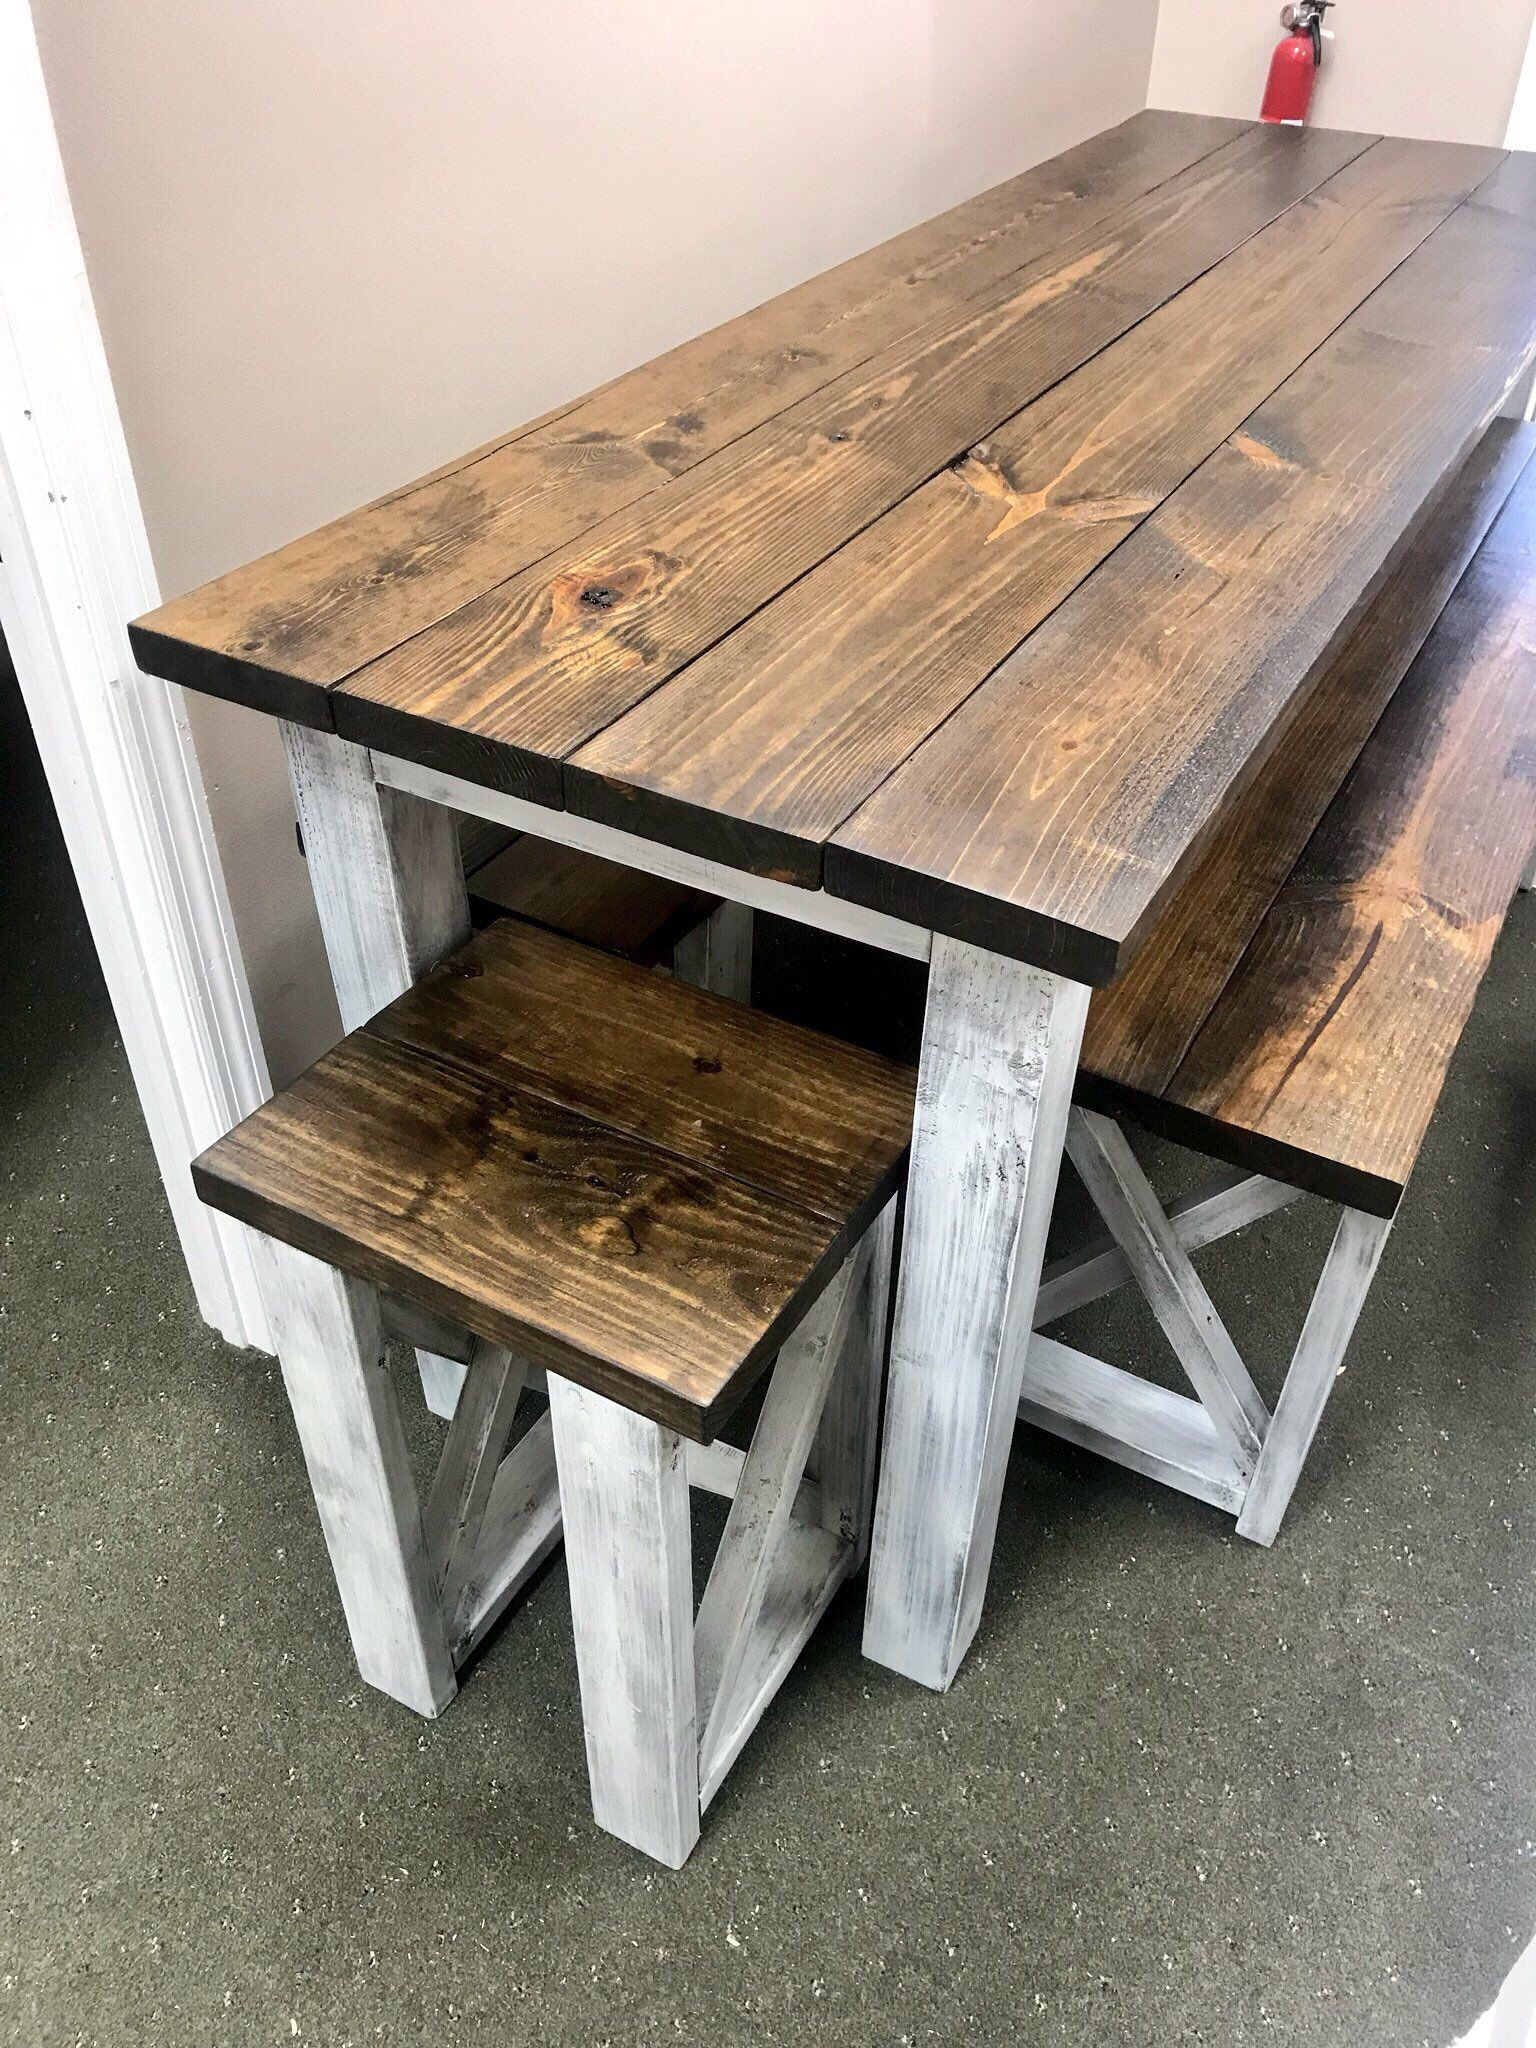 Long Pub Style Farmhouse Table Set With Stools And Tall Benches Dark Walnut Top With White Distressed Base Tall Farmhouse Table Set Rustic Kitchen Tables Farmhouse Table Setting Farmhouse Table With